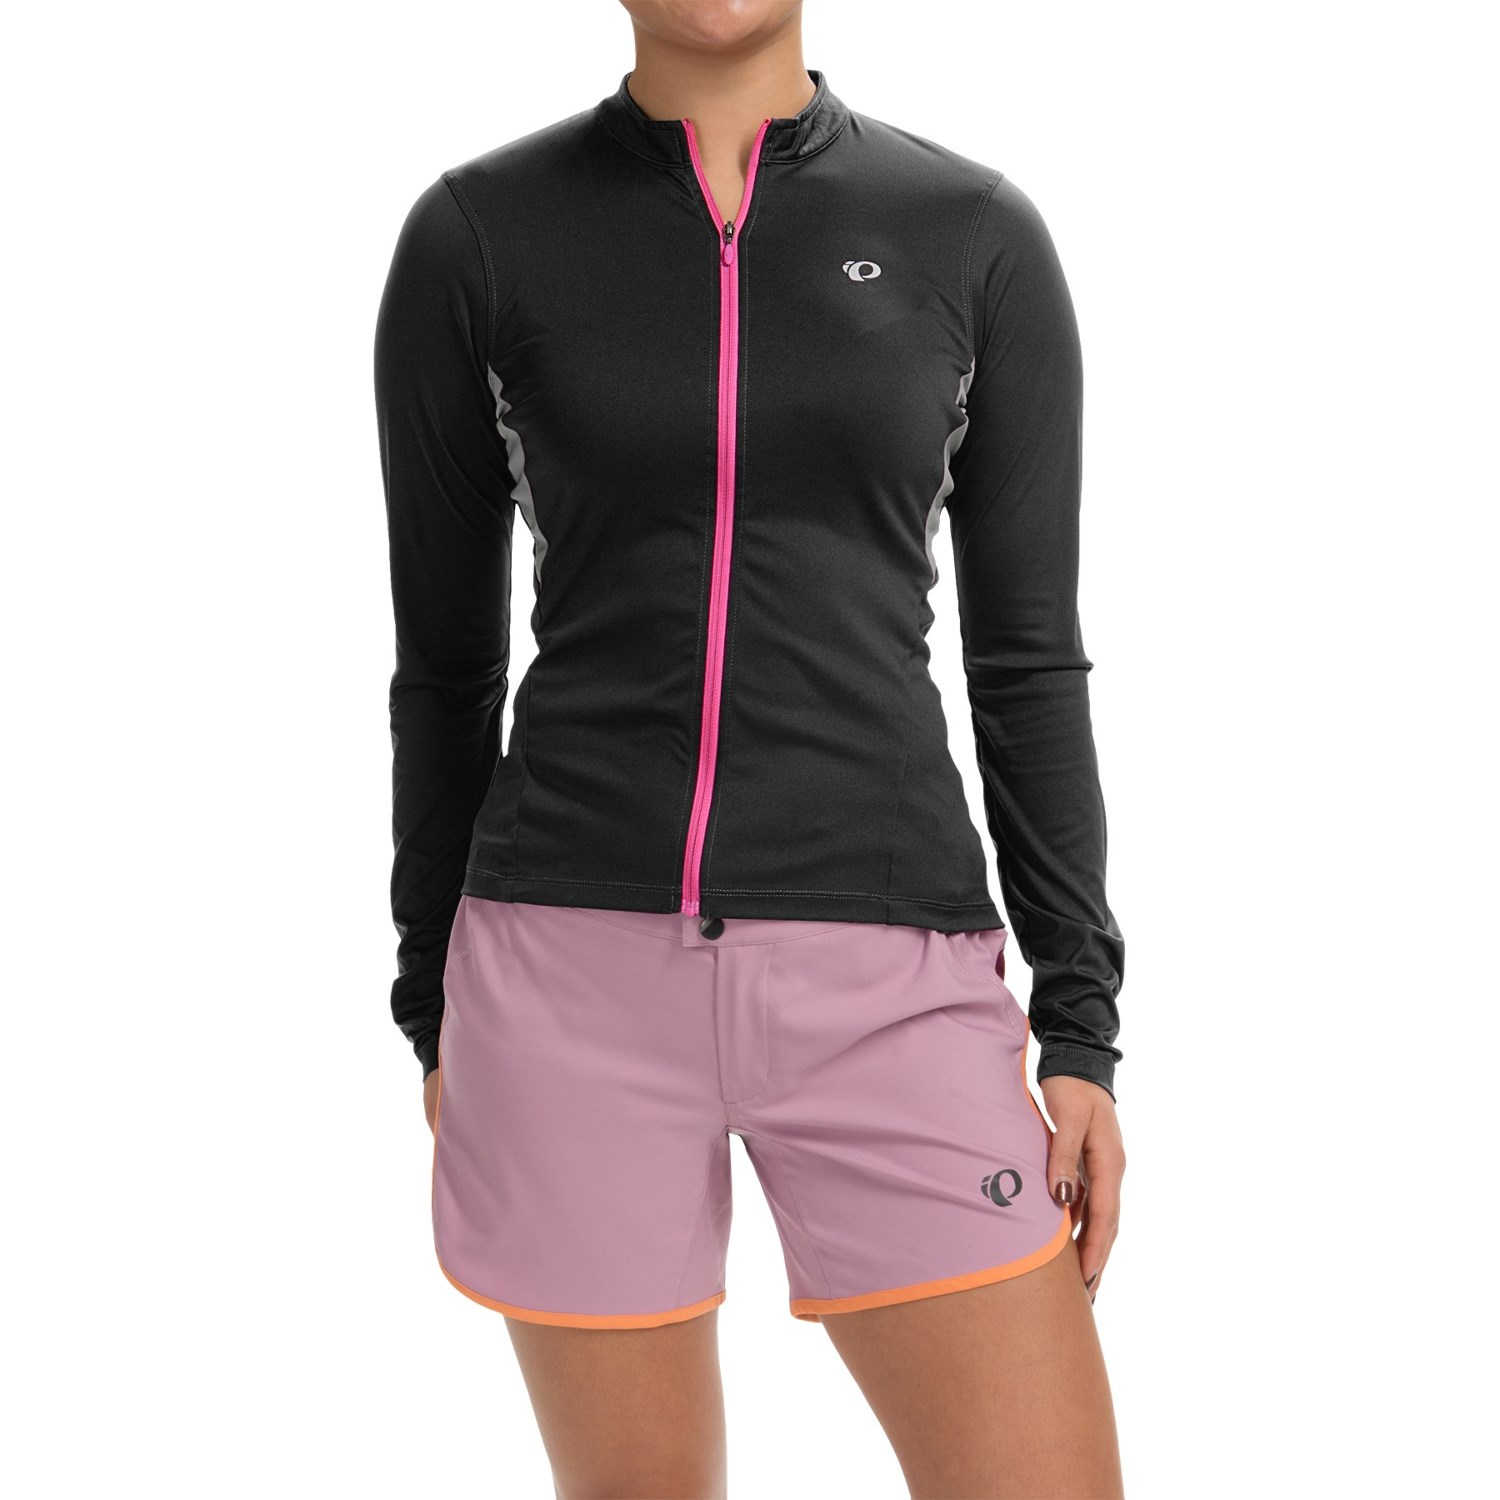 Pearl izumi select cycling jersey for women save 46 for Pearl izumi cycling shirt